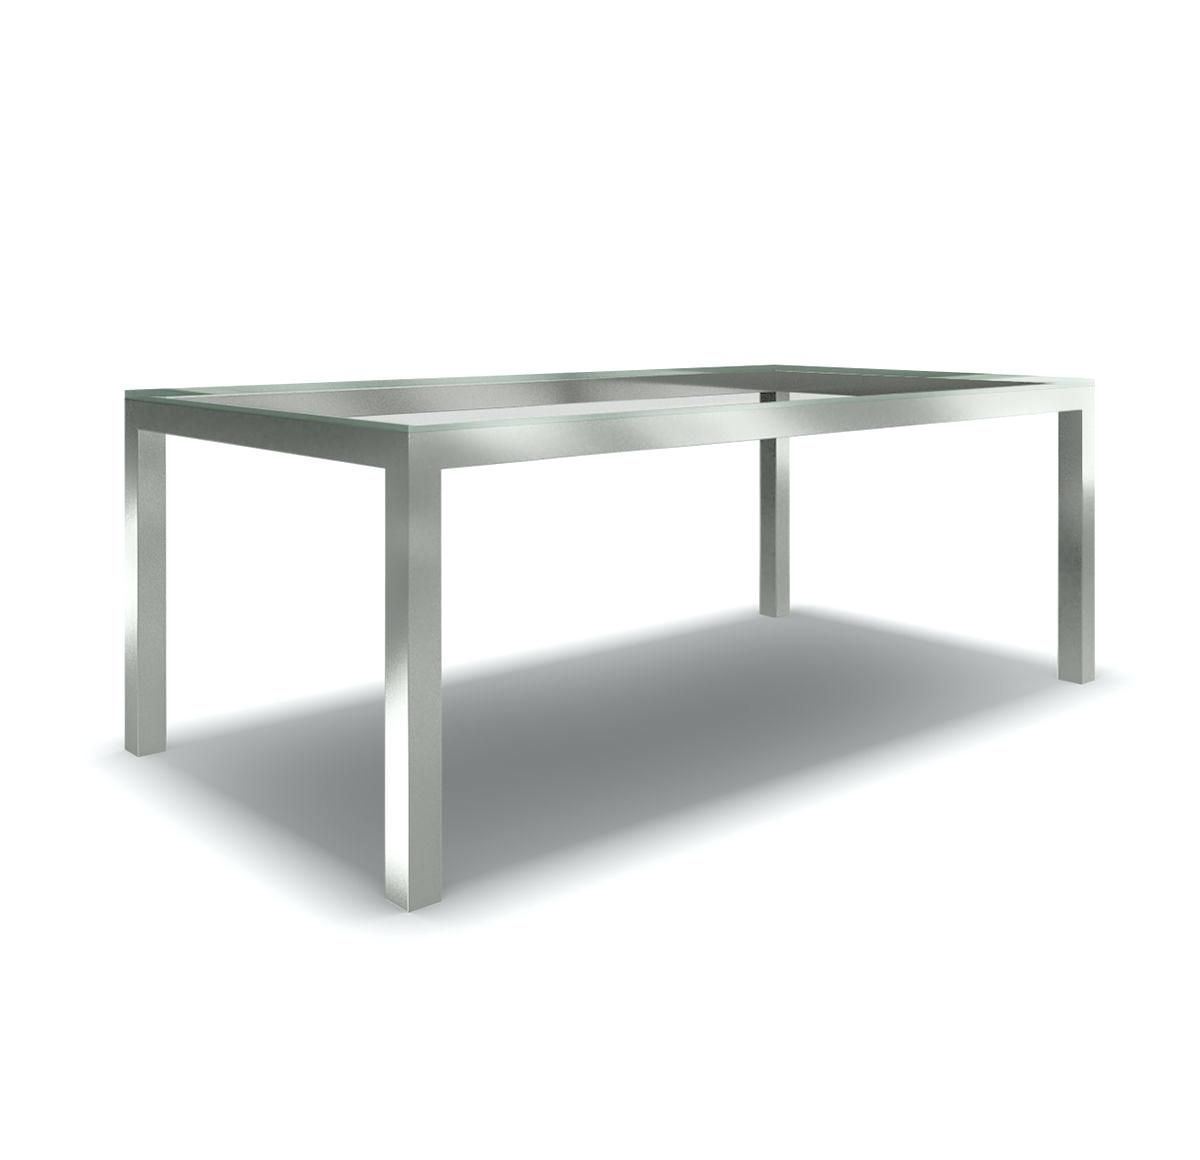 Adjustable Height Coffee Table Ikea Download Convertible Coffee Dining Table Uk Convertib In 2020 Coffee Table Adjustable Height Coffee Table Square Glass Coffee Table